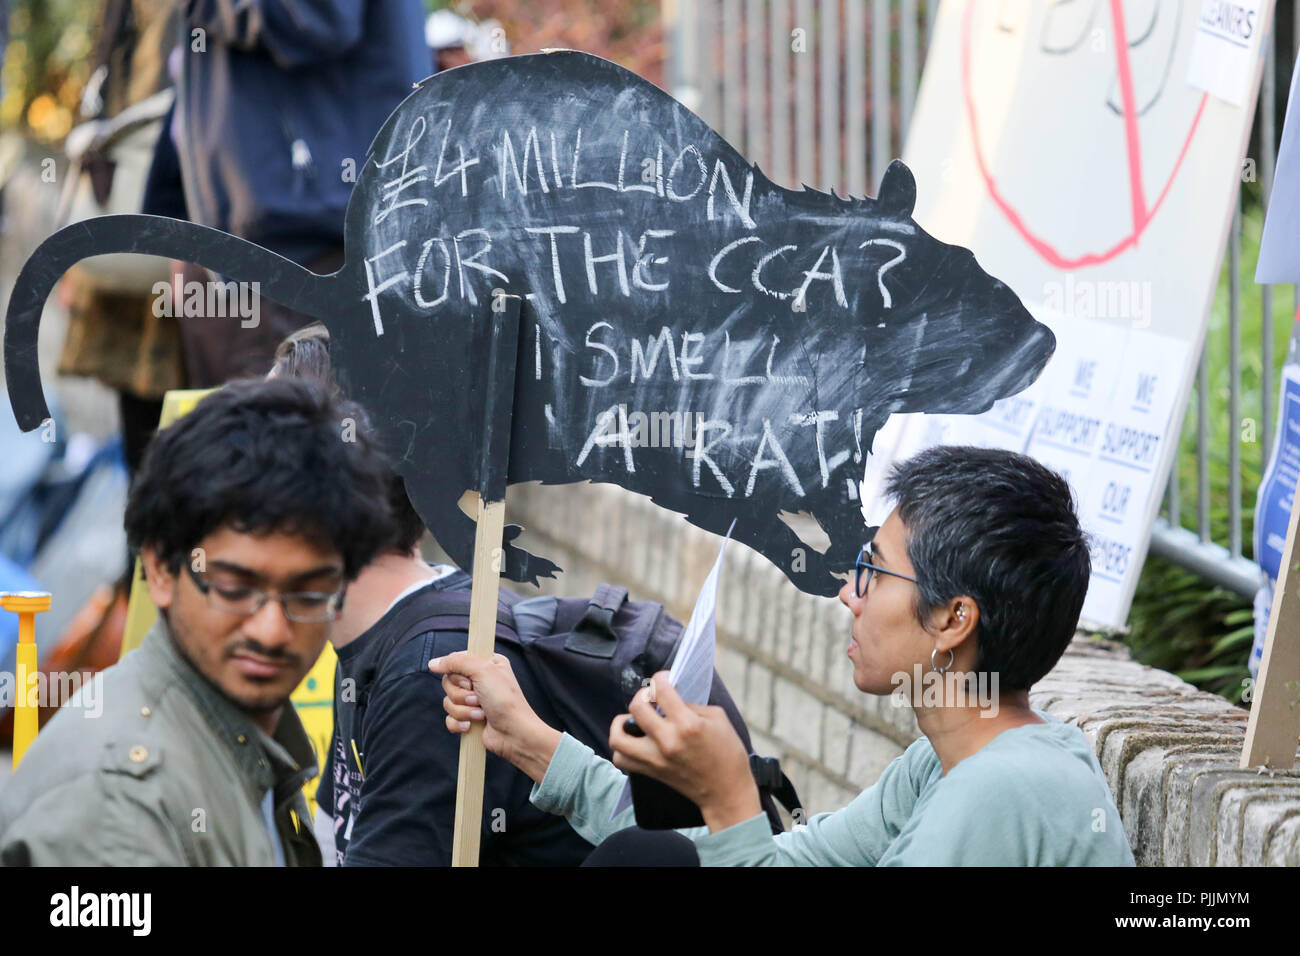 London, UK. 7th Sept 2018. Demonstration outside the Goldsmith Gallery calling for cleaners to be taken in house and end their ongoing problems with current employer ISS. Penelope Barritt/Alamy Live News - Stock Image